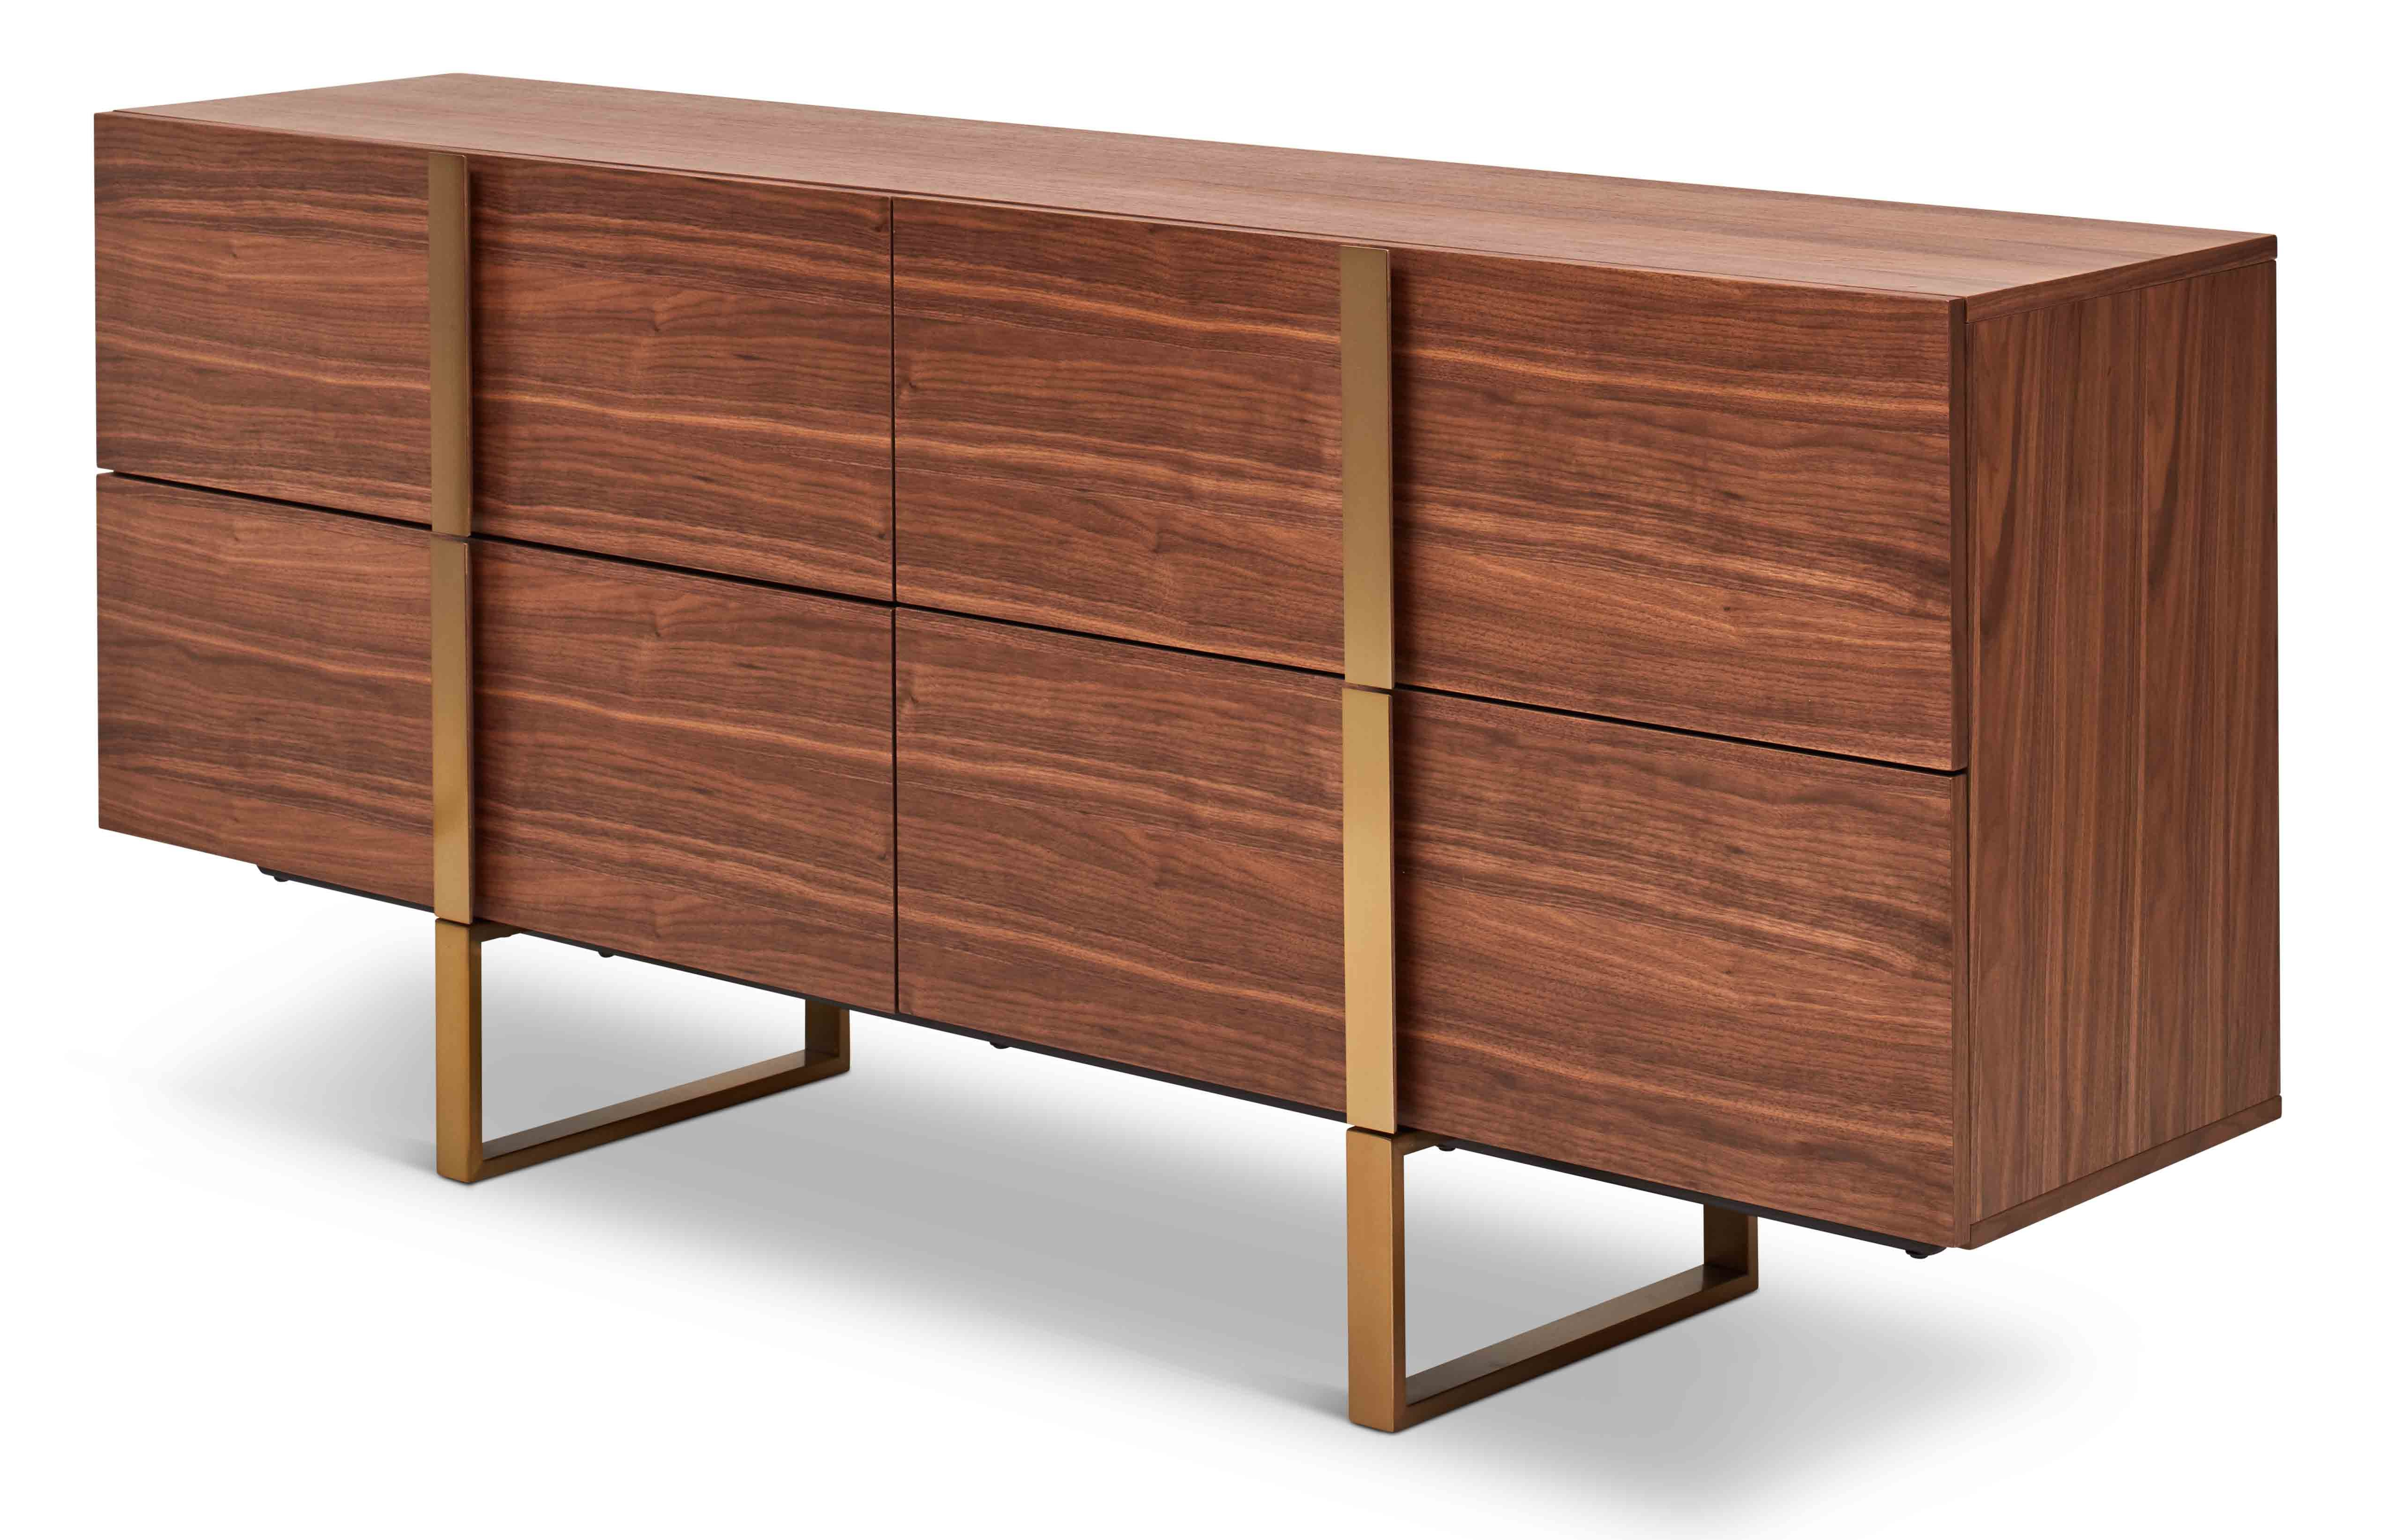 Modern Sideboards + Buffets | Allmodern Intended For Casolino Sideboards (View 4 of 20)